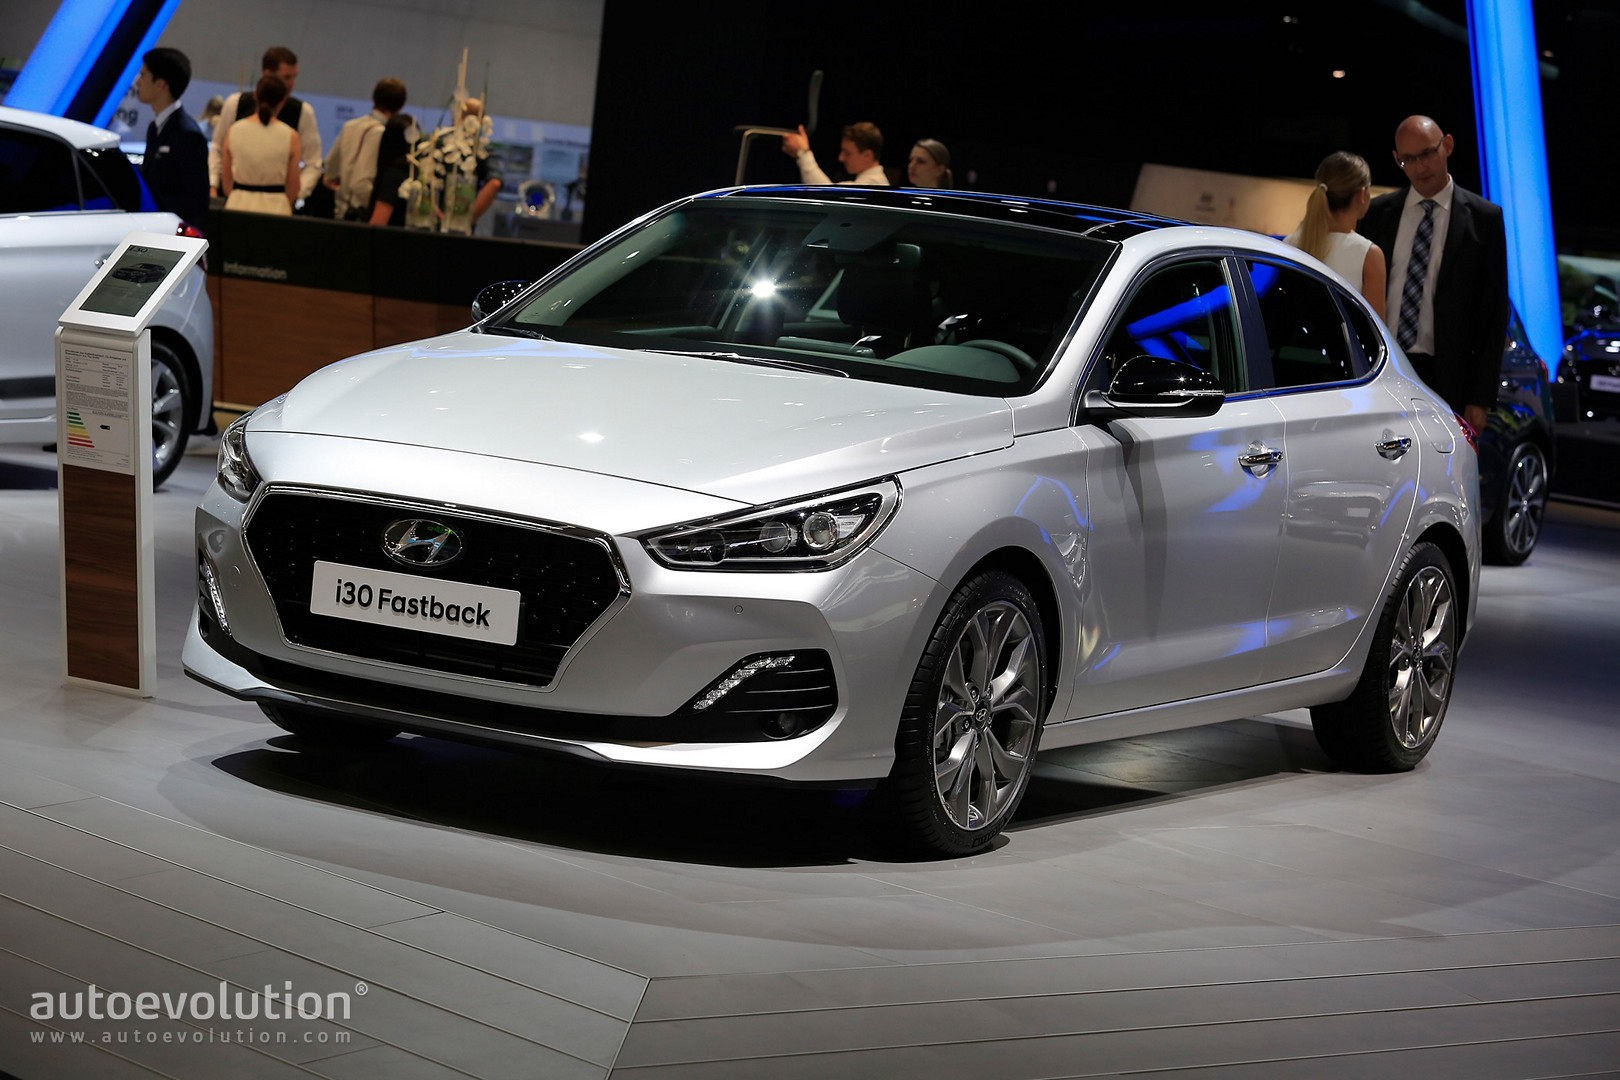 Hyundai i30 Fastback Is Not a Mustang in Frankfurt ...